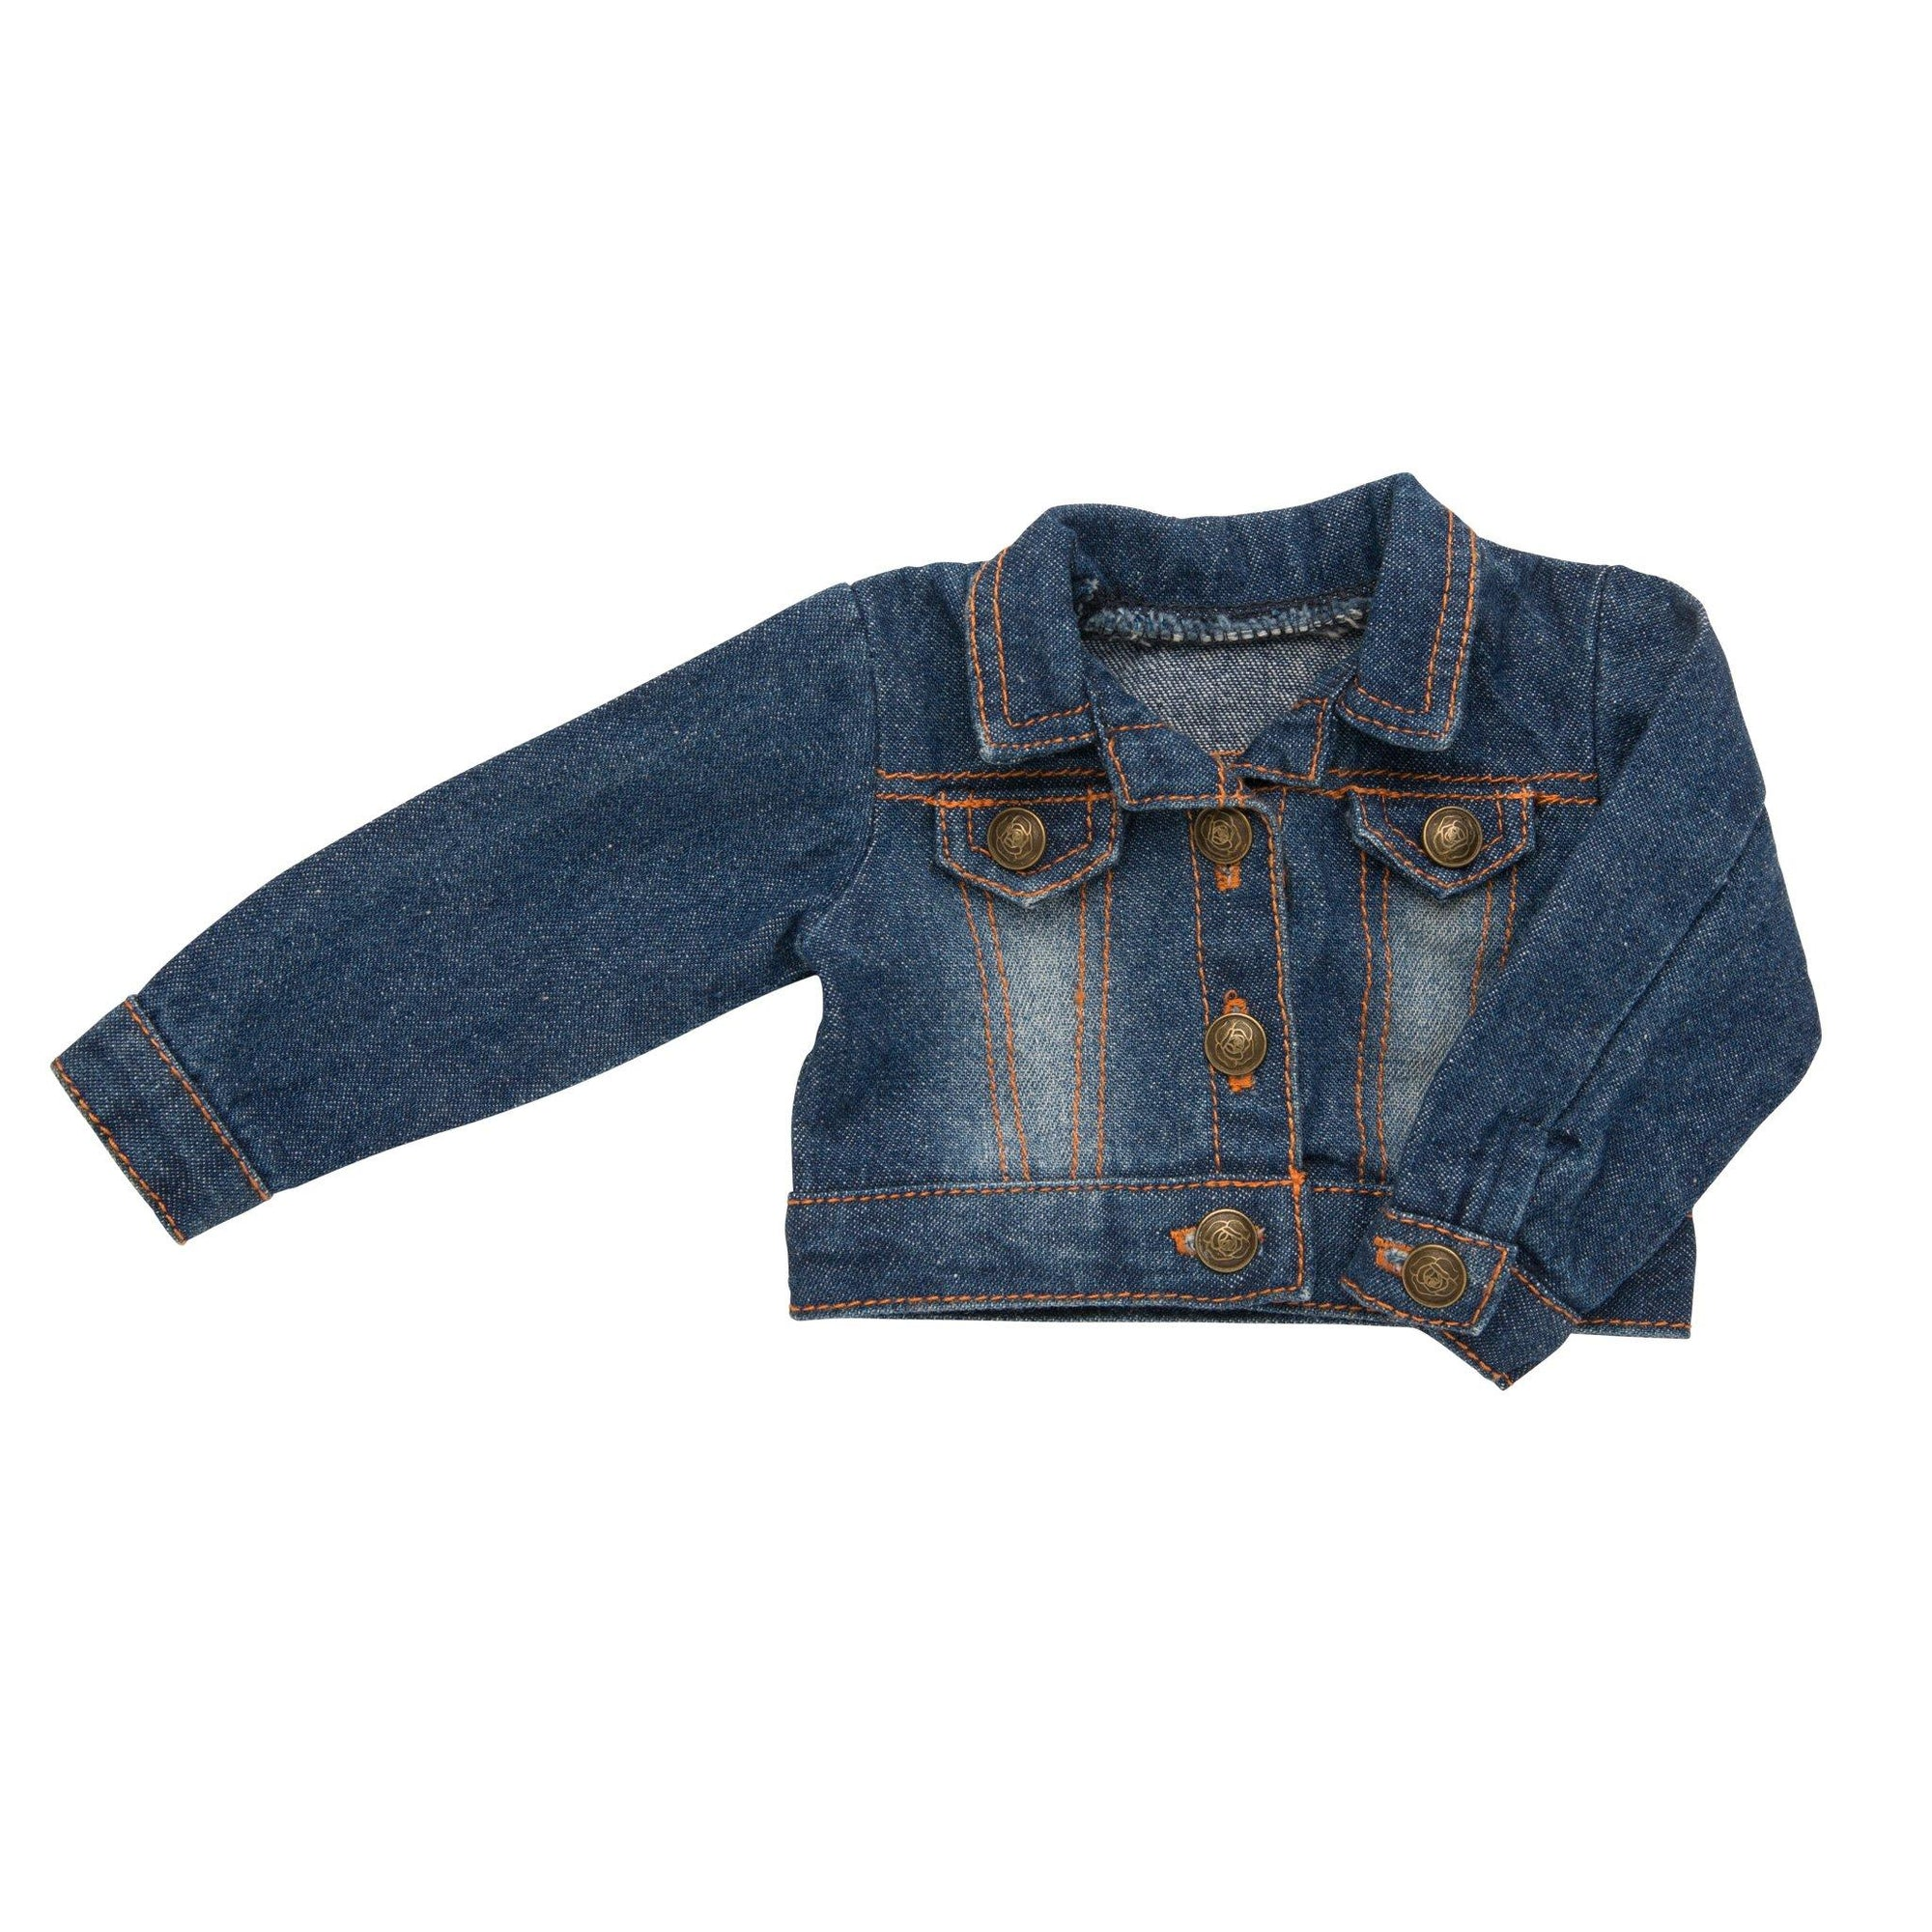 Denim jean jacket for 18 inch dolls.  Suitable for girl dolls and boy dolls.